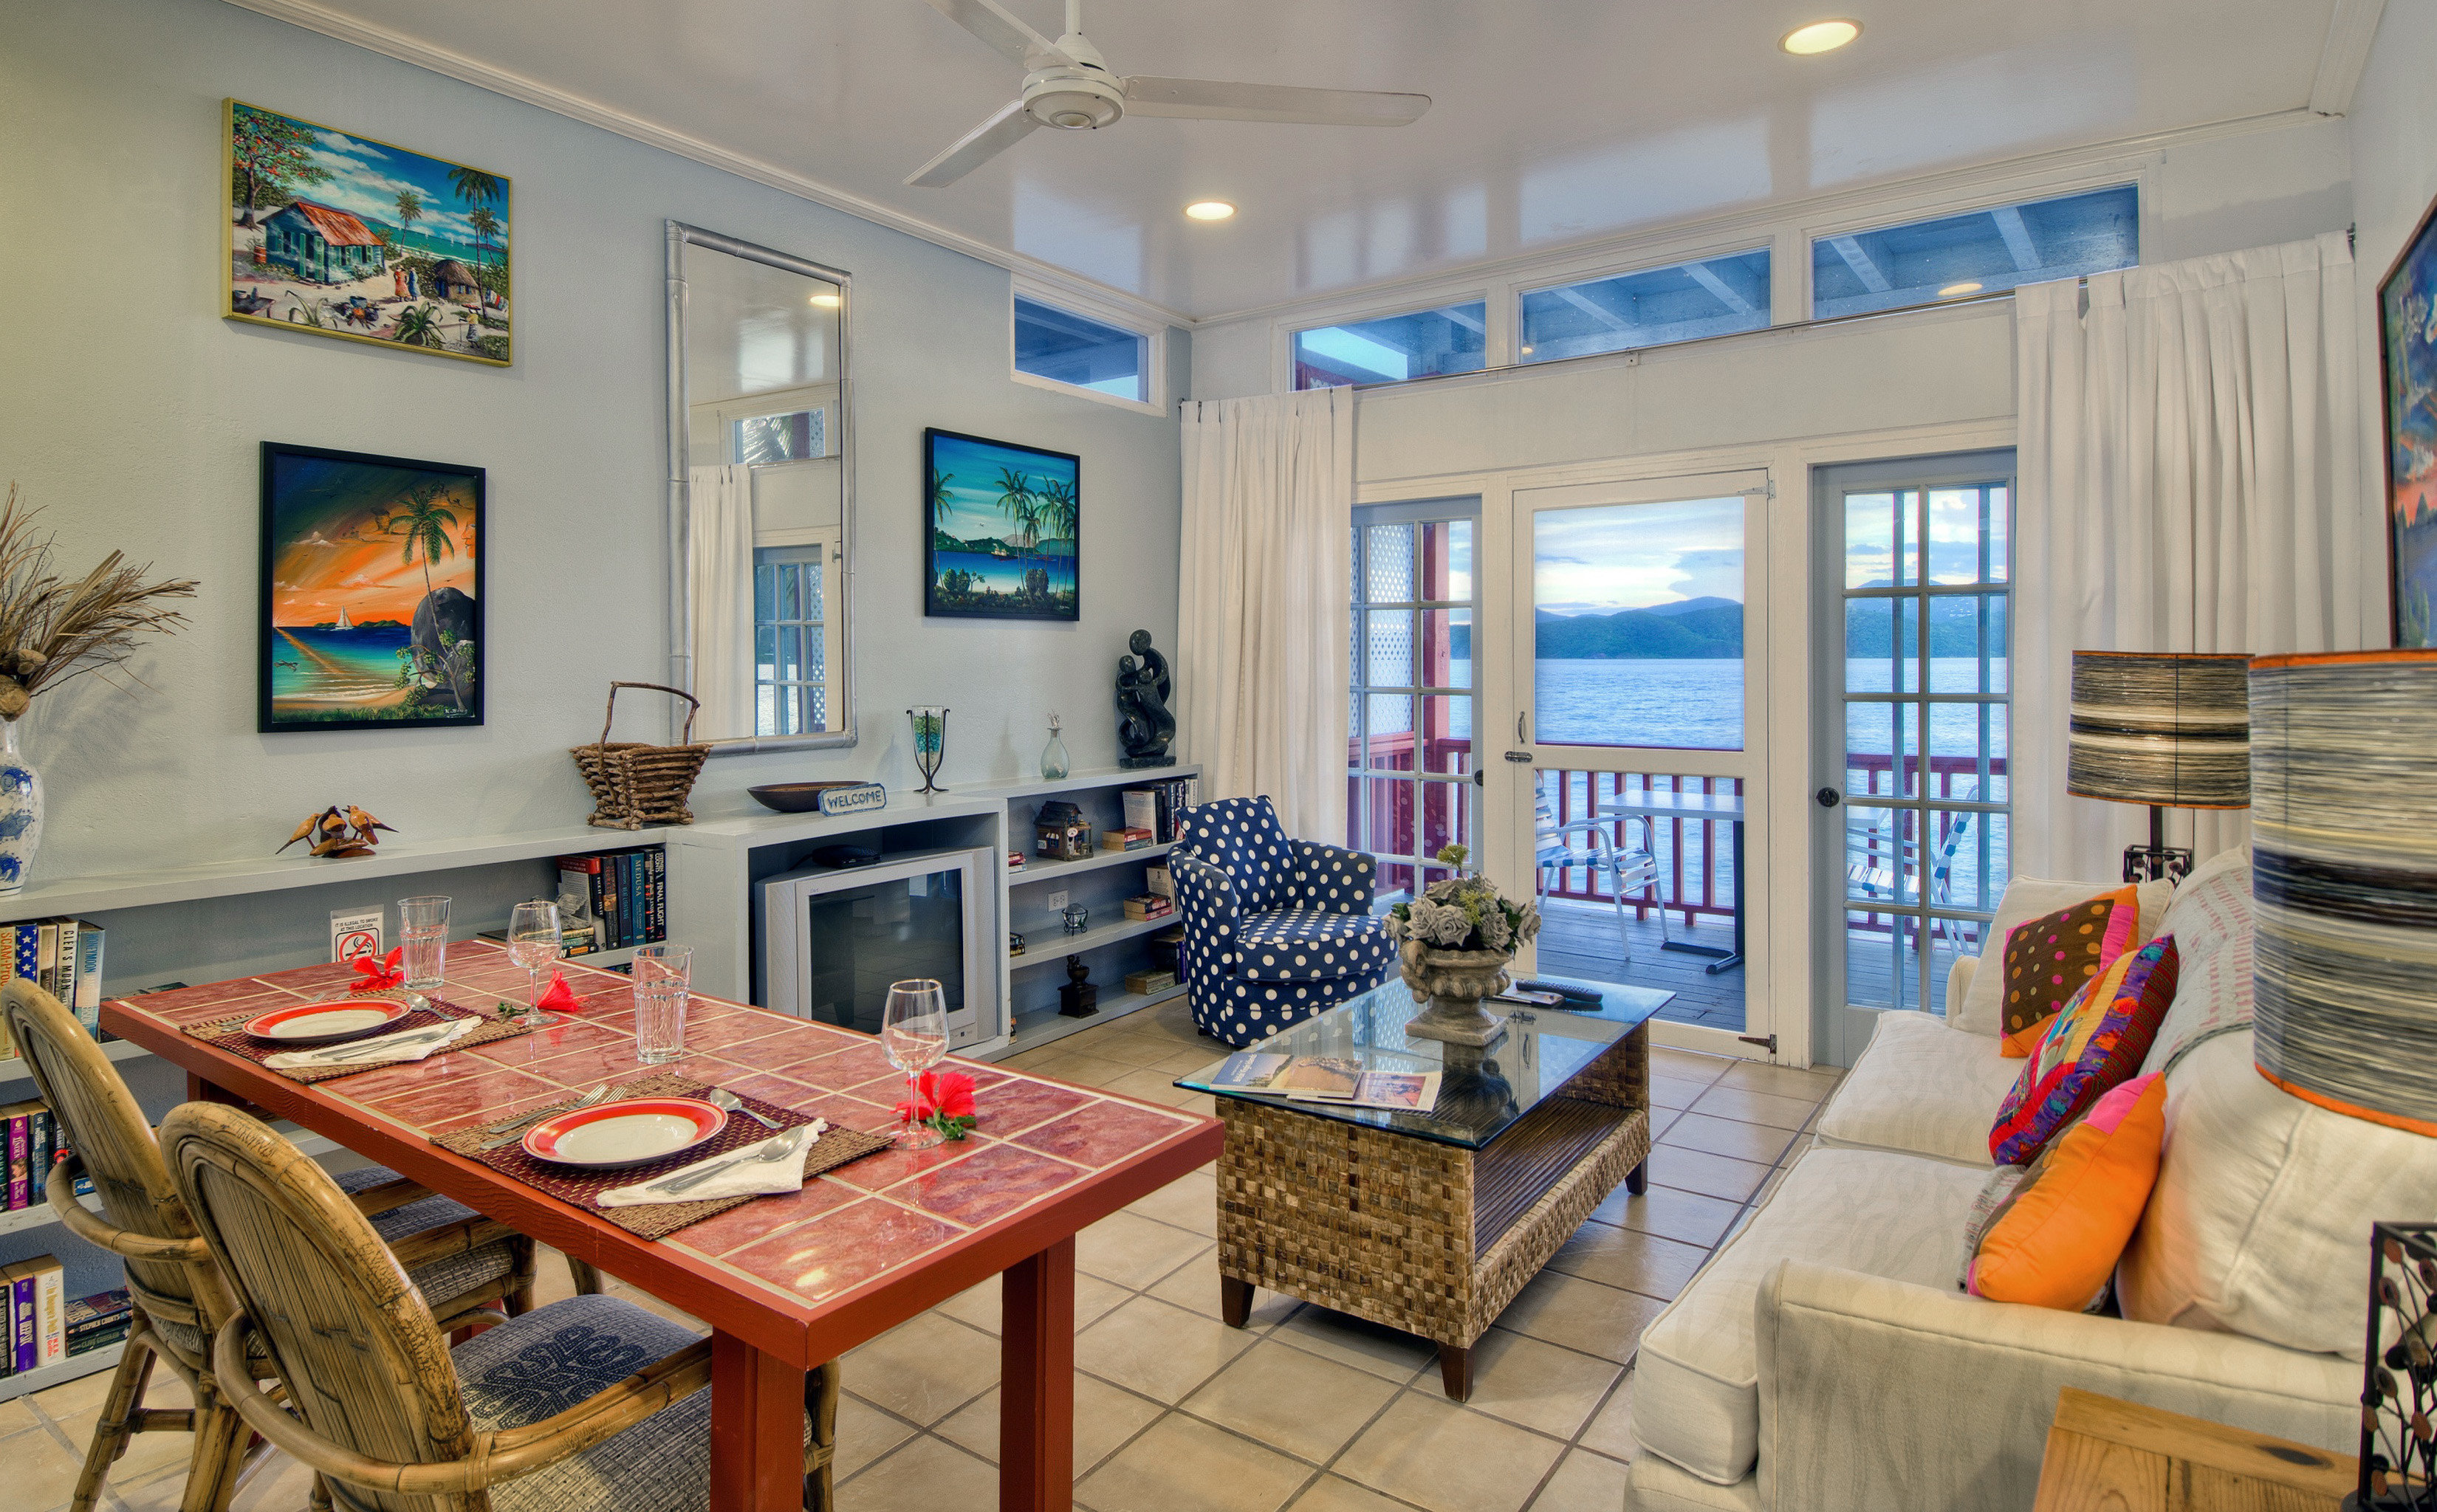 Balcony Dining Drink Eat Modern Scenic views Suite property home living room house cottage condominium